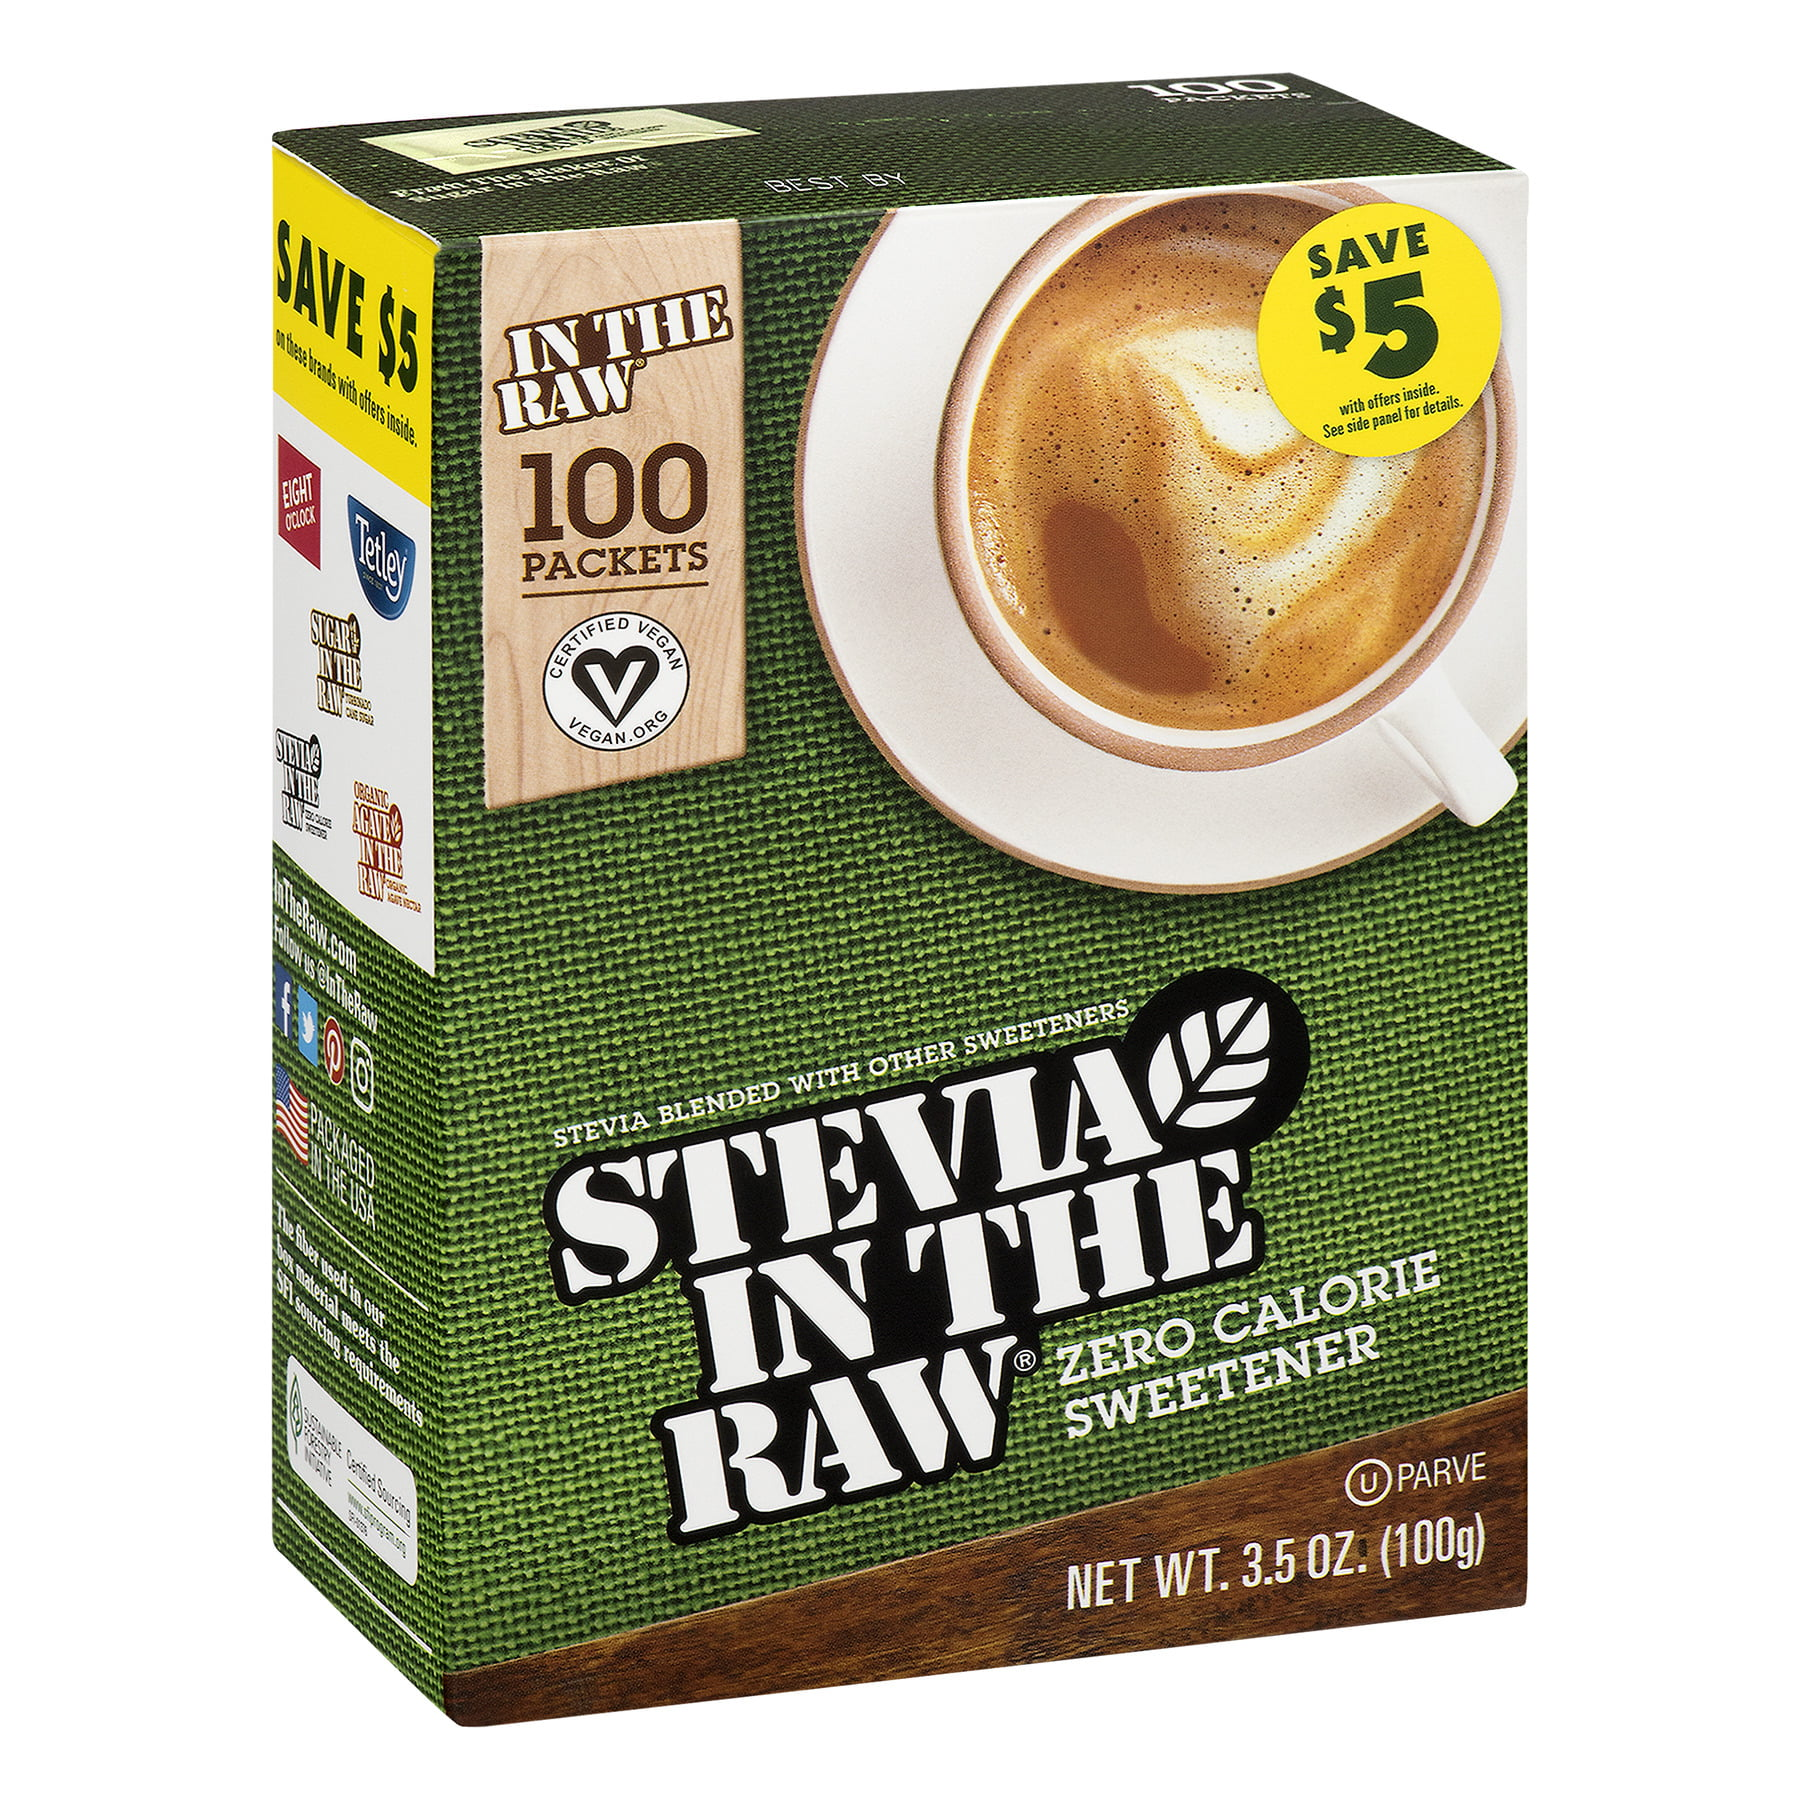 Is stevia the best option